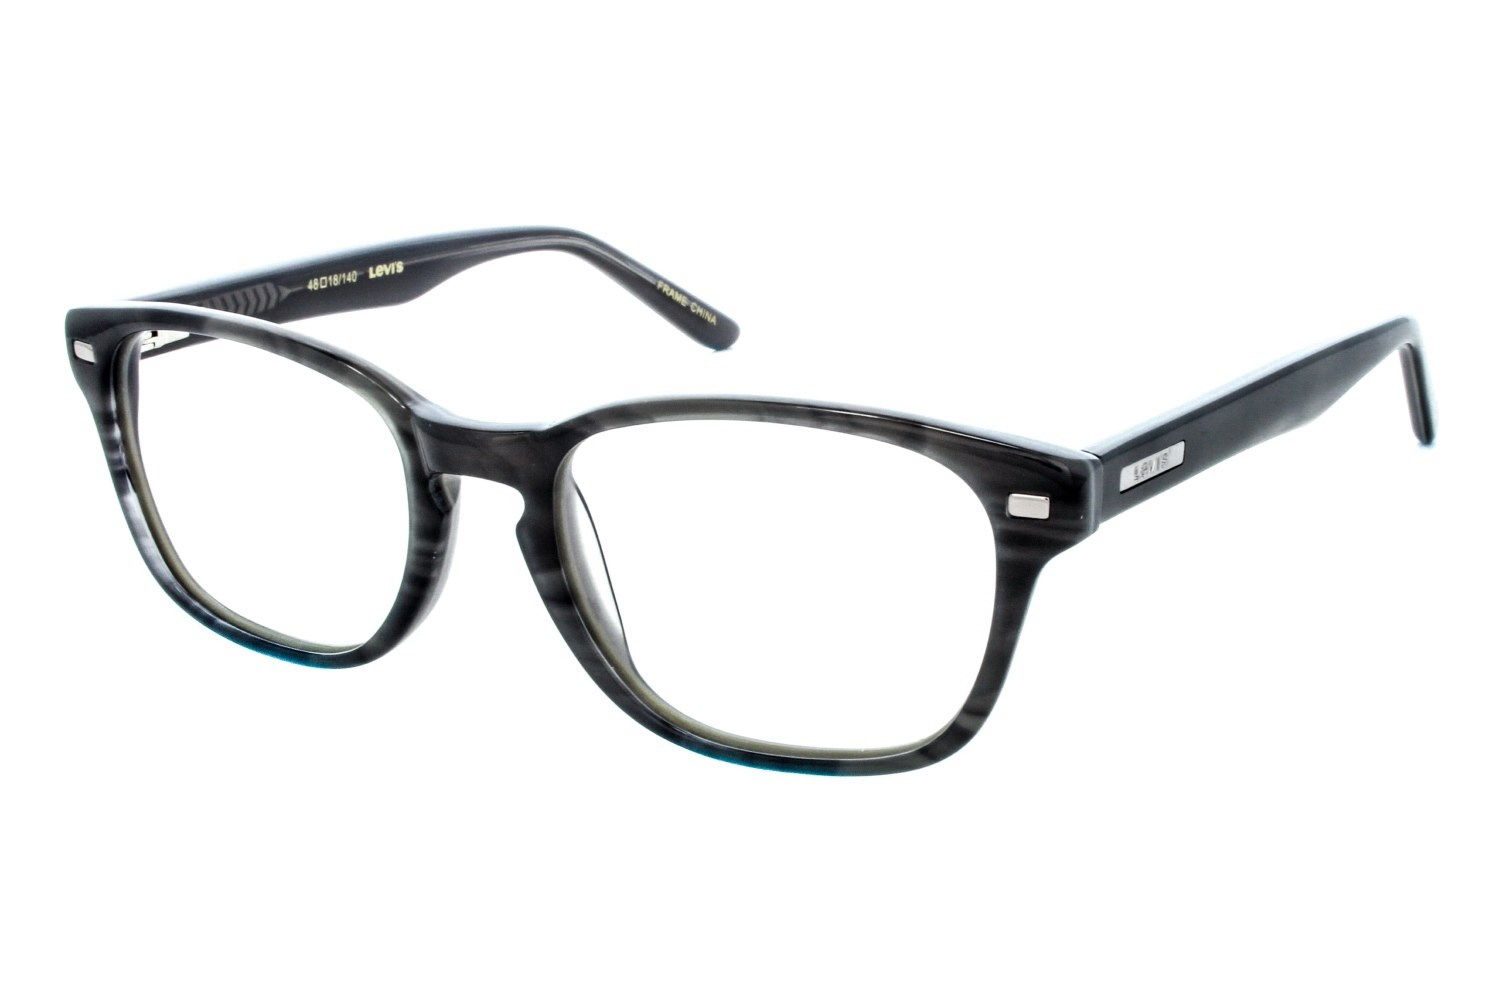 Levis LS 626 Prescription Eyeglasses Frames